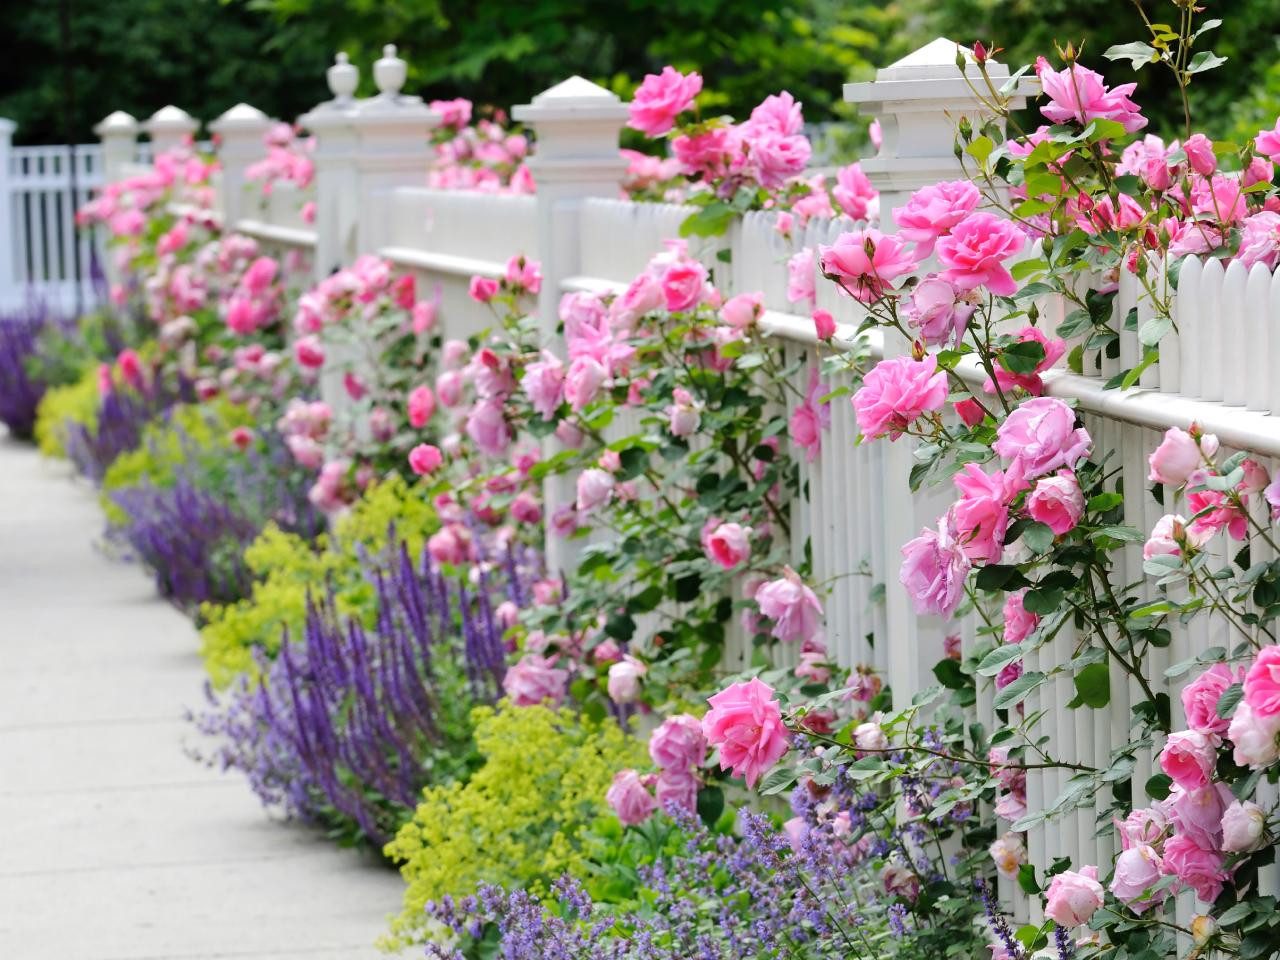 Pink Delight Roses on Picket Fence by Walpole